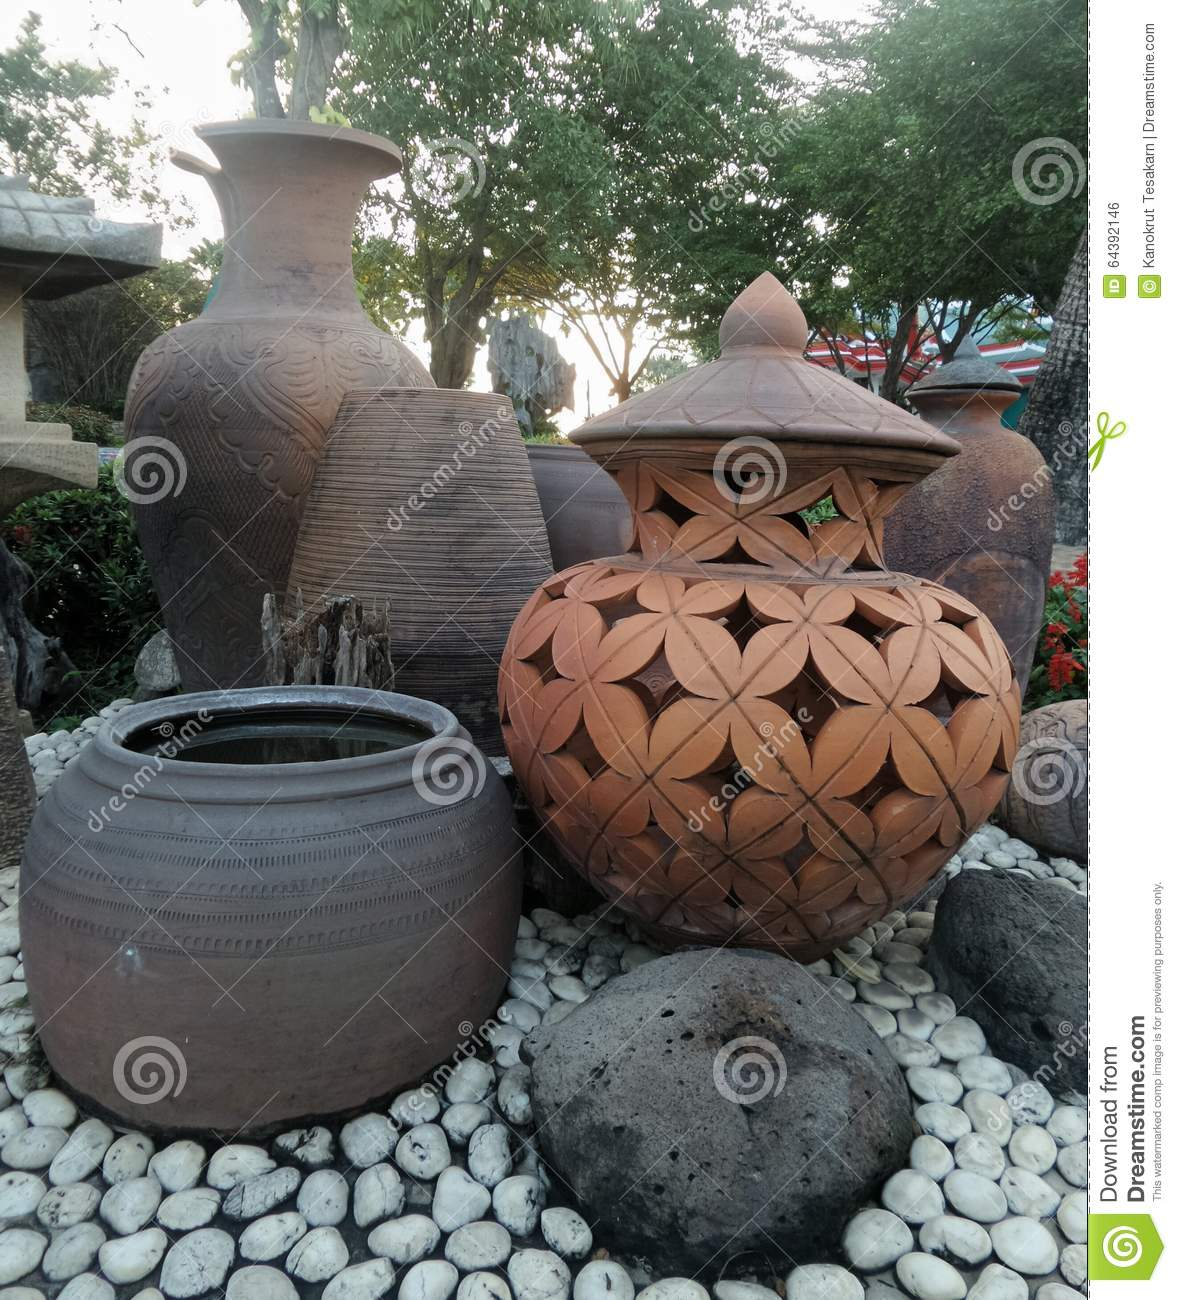 Clay pot garden decoration stock photo. Image of style ...